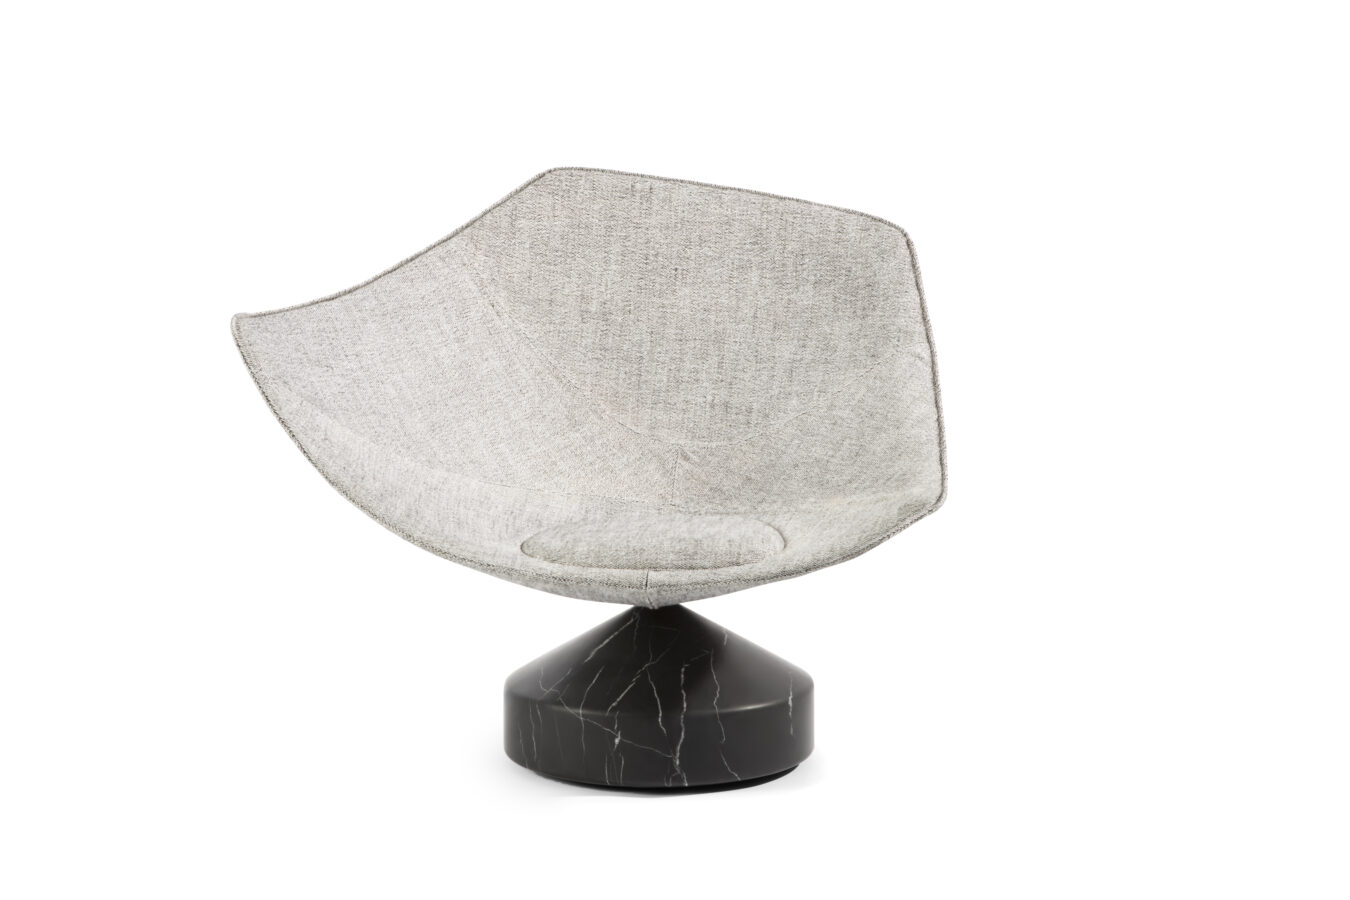 Emmanuel Babled Jaganda - a Contemporary Chair upholstered with Swowfield Rogers & Goffigon's fabric